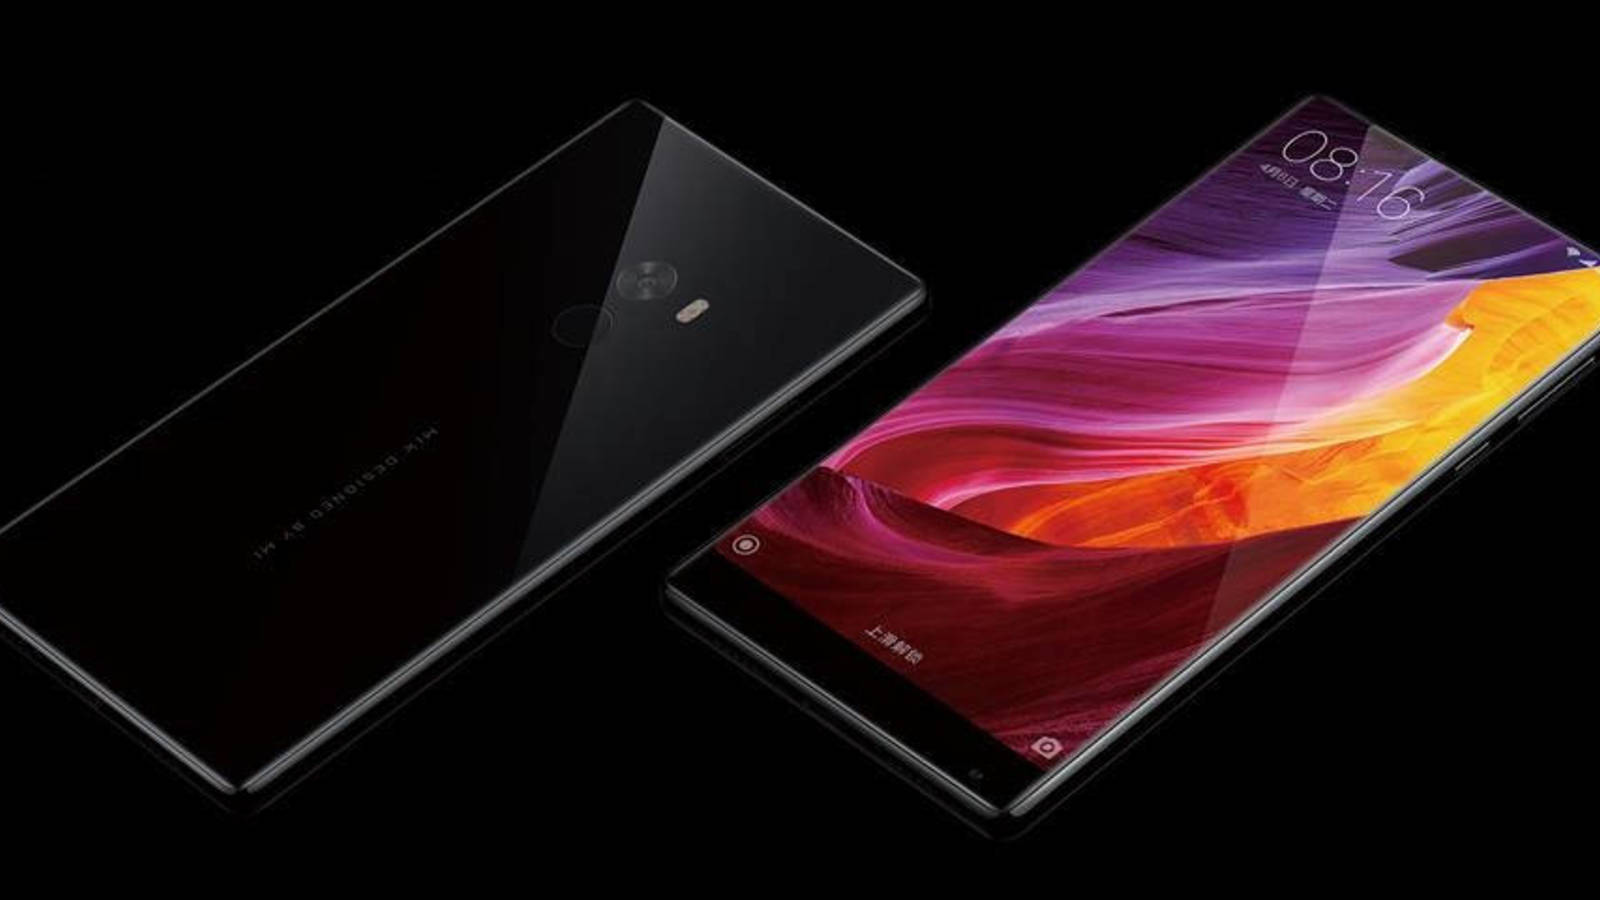 xiaomi-mi-mix-el-movil-chino-cuya-pantalla-ocupa-mas-del-91-del-frontal